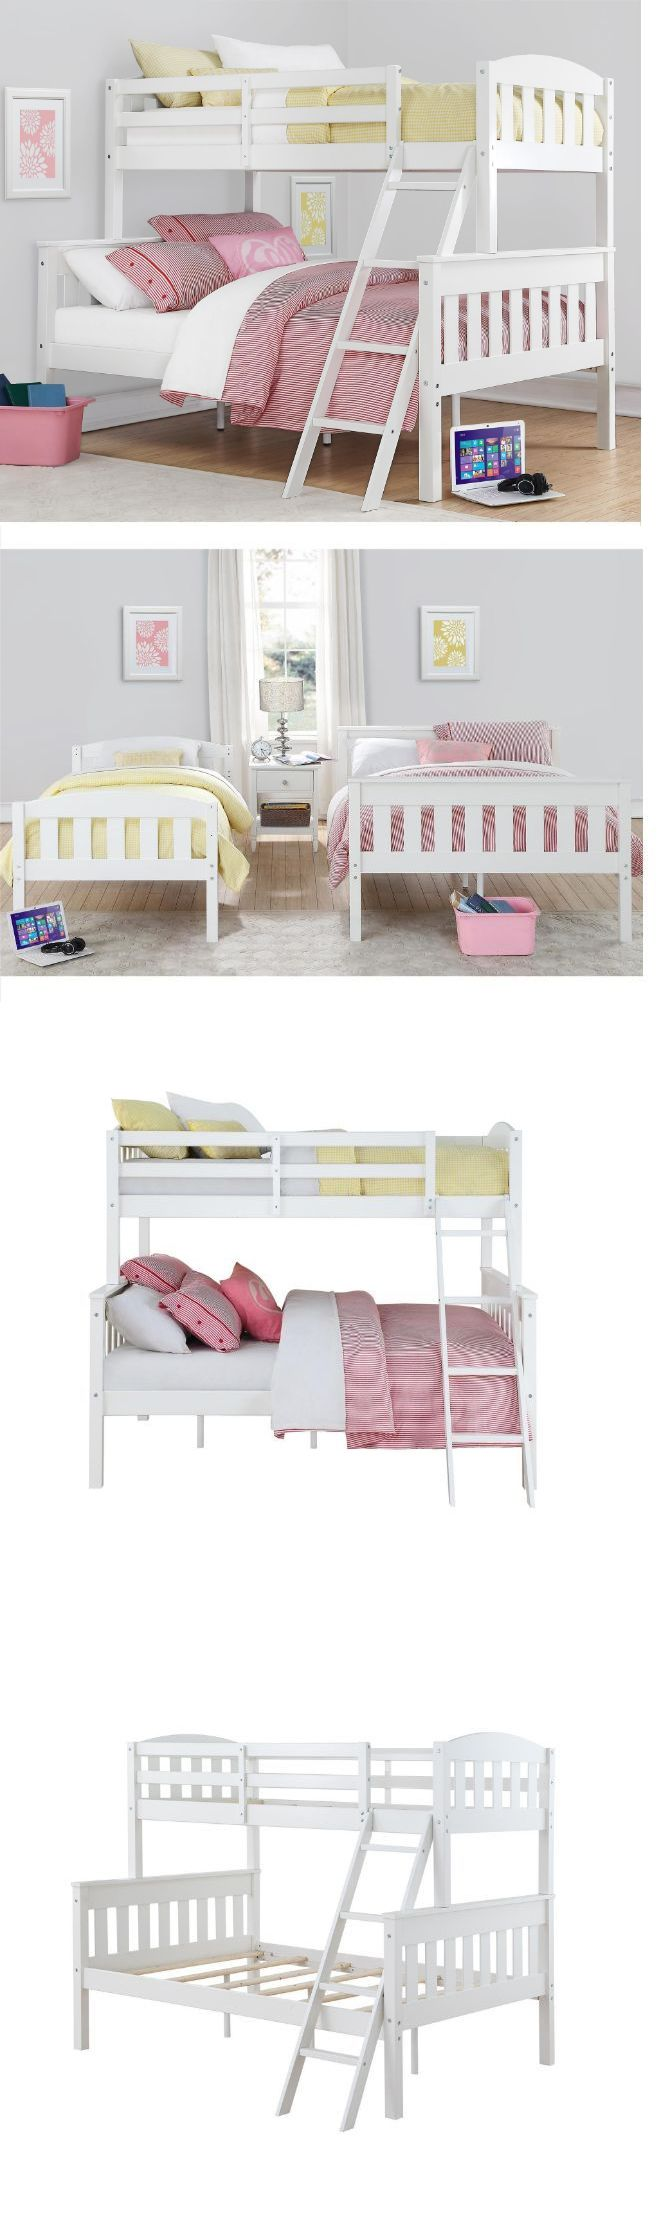 Bedroom Furniture 66742: Bunk Beds With Twin Over Full For Girls Kids Stairs Ladder Set White Convertible -> BUY IT NOW ONLY: $399.99 on eBay!